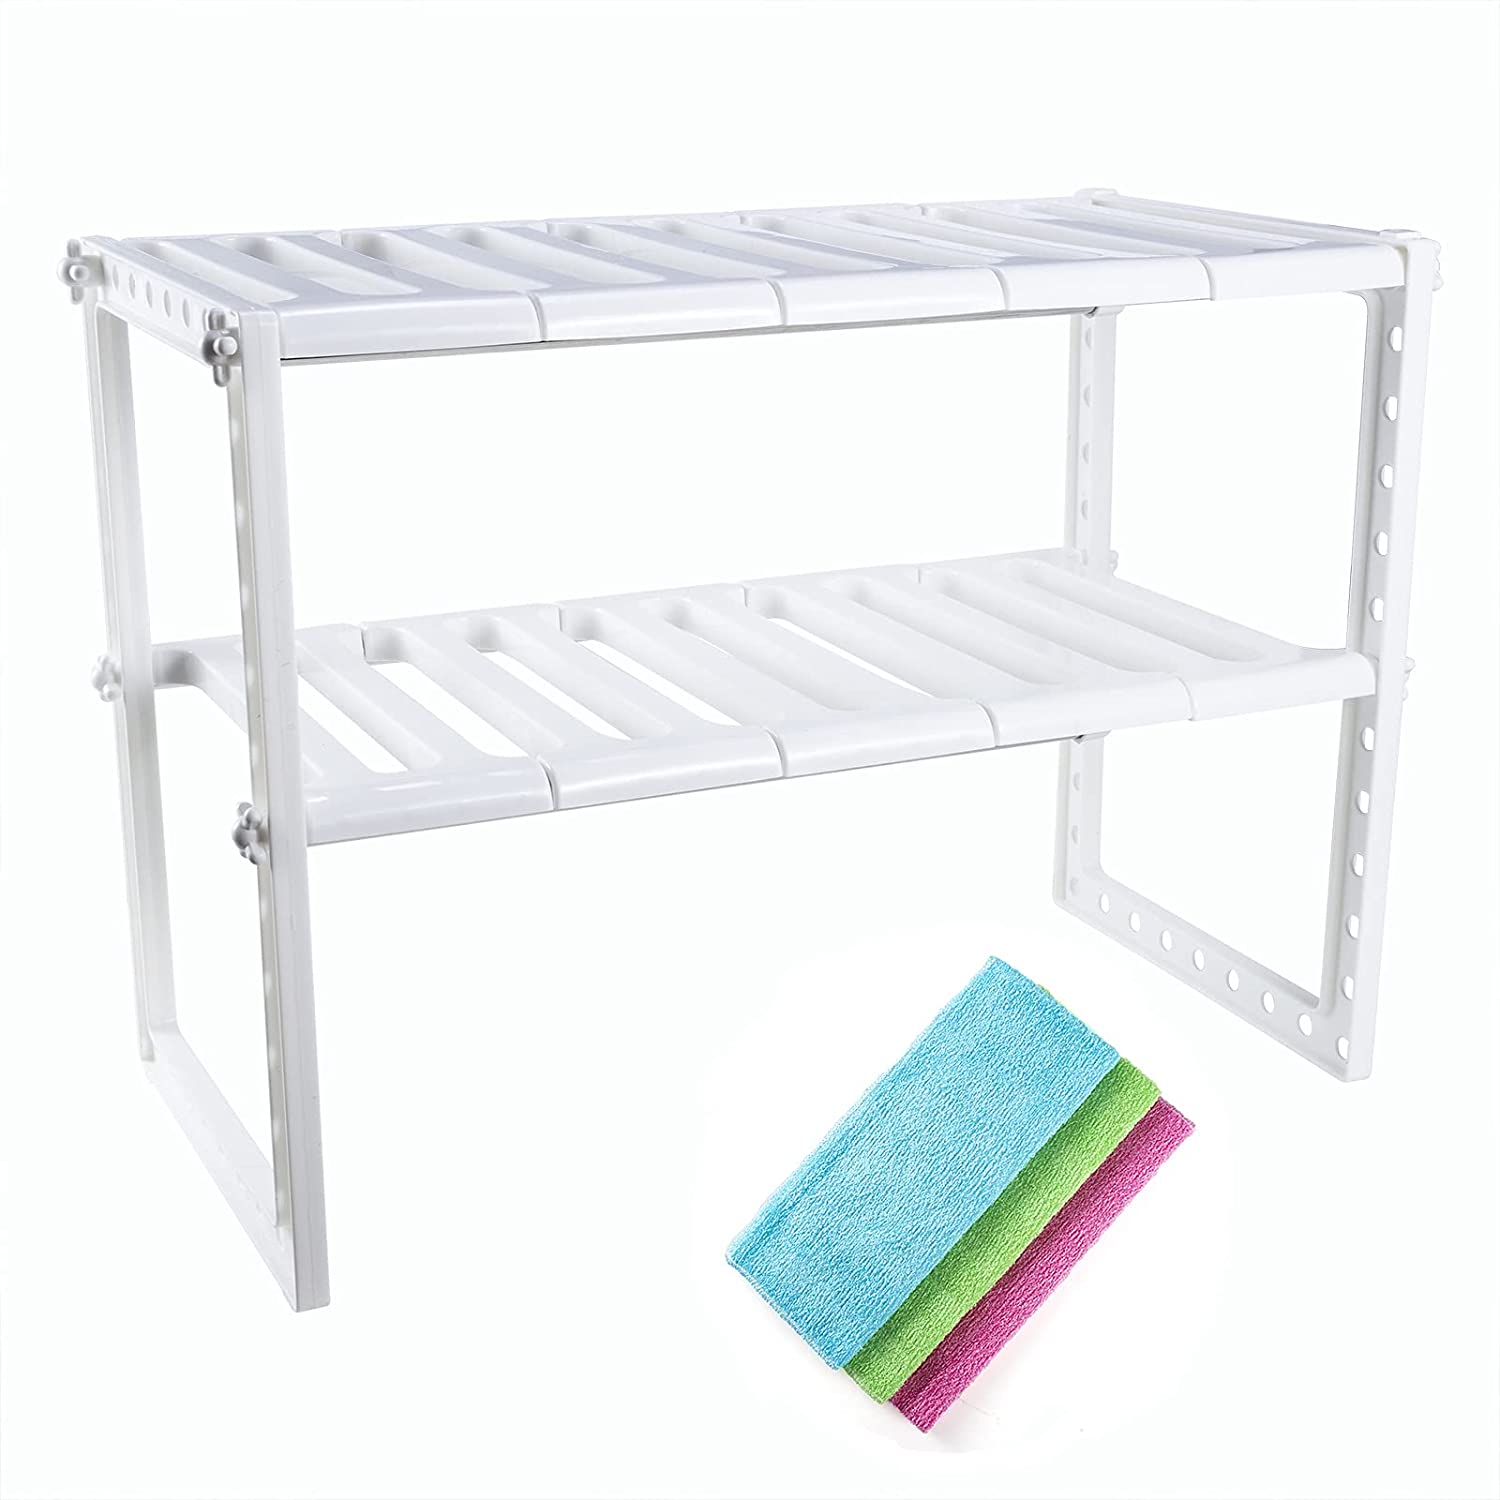 Expandable Under Sink Shipping included Organizer Adjustable Storage Sale item 2-T Shelf and